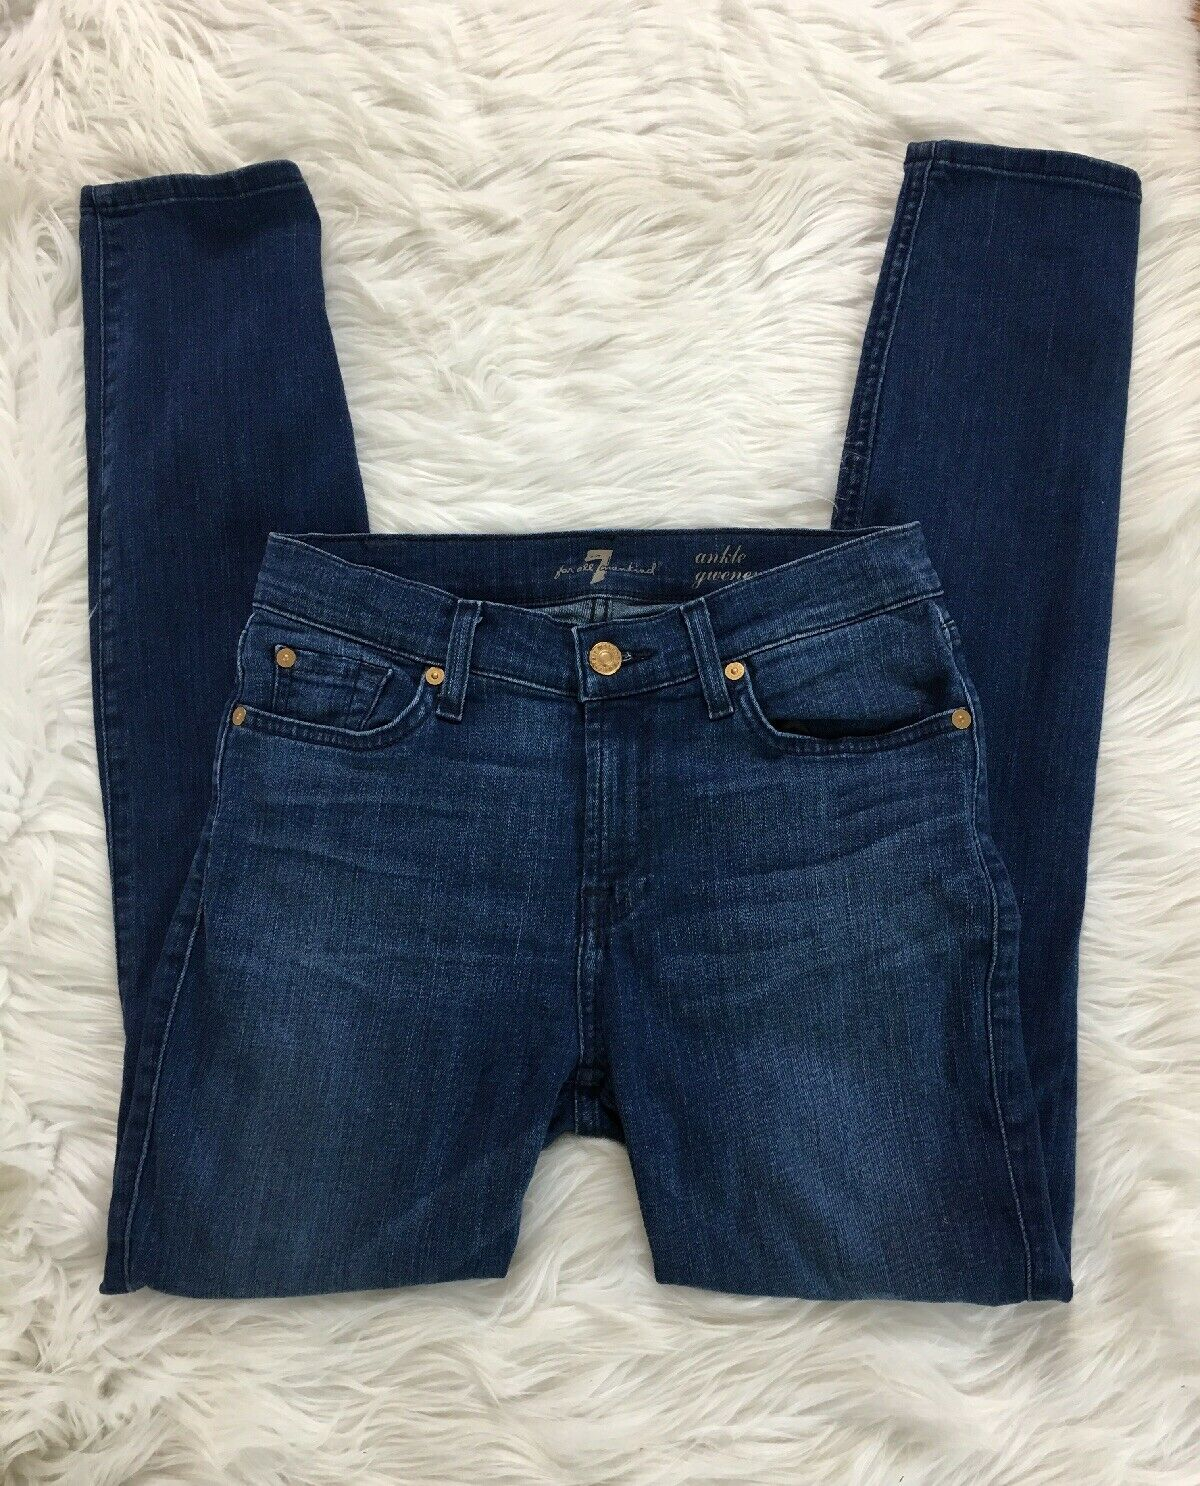 7 For All Mankind Gwenevere Ankle Skinny Jeans Sz 26 High Rise